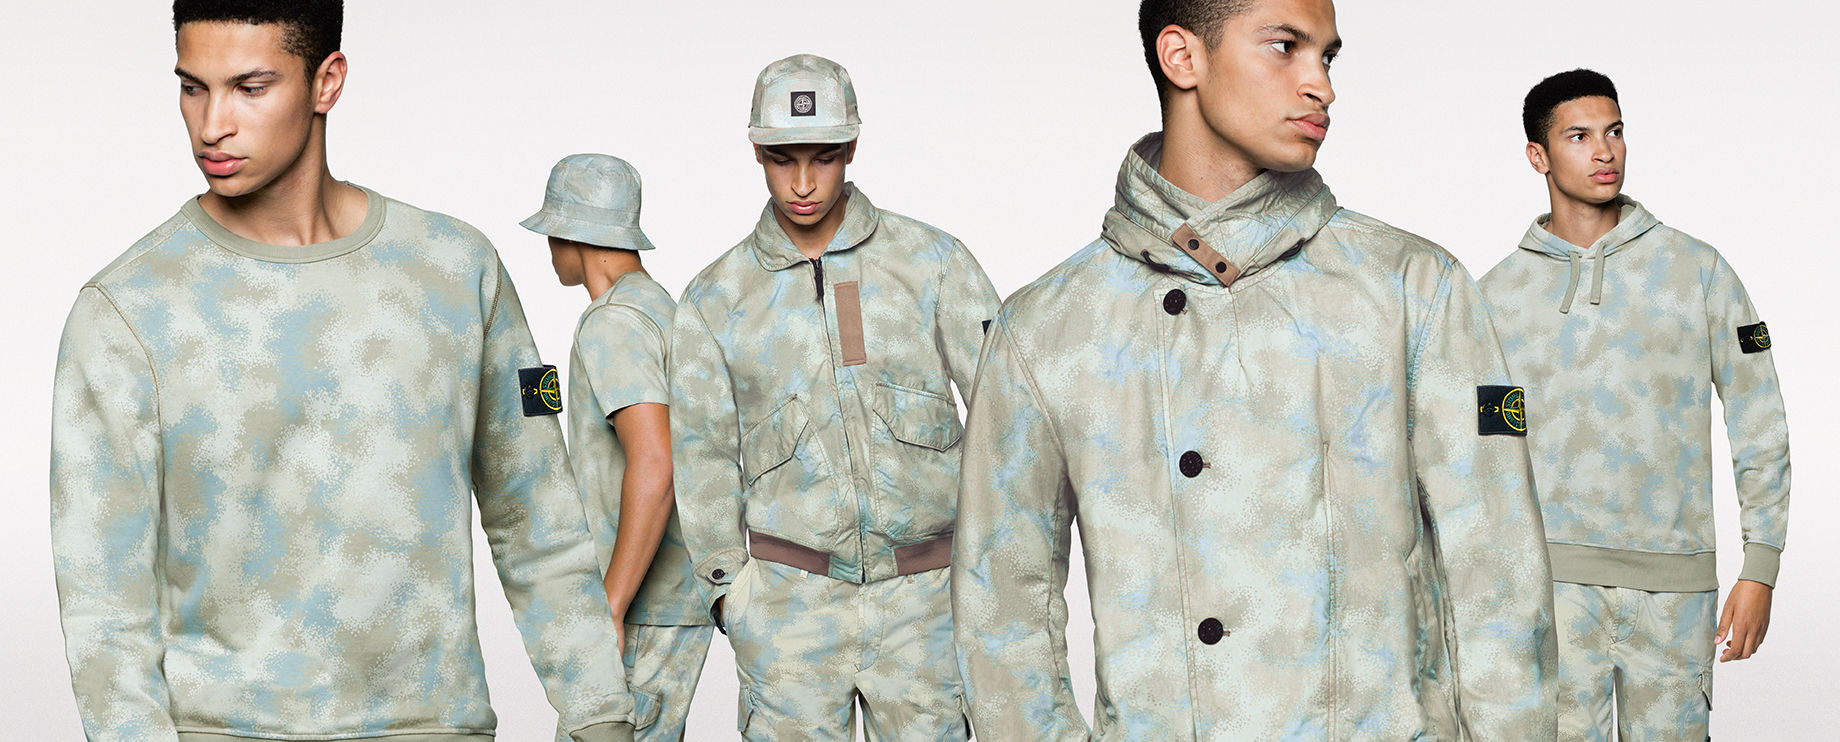 Five shots of the same model, showing the front and side view of him wearing different styles of sweatshirts, pants, shorts, jackets, hats and a t shirt, all in the same khaki and light blue camouflage print.